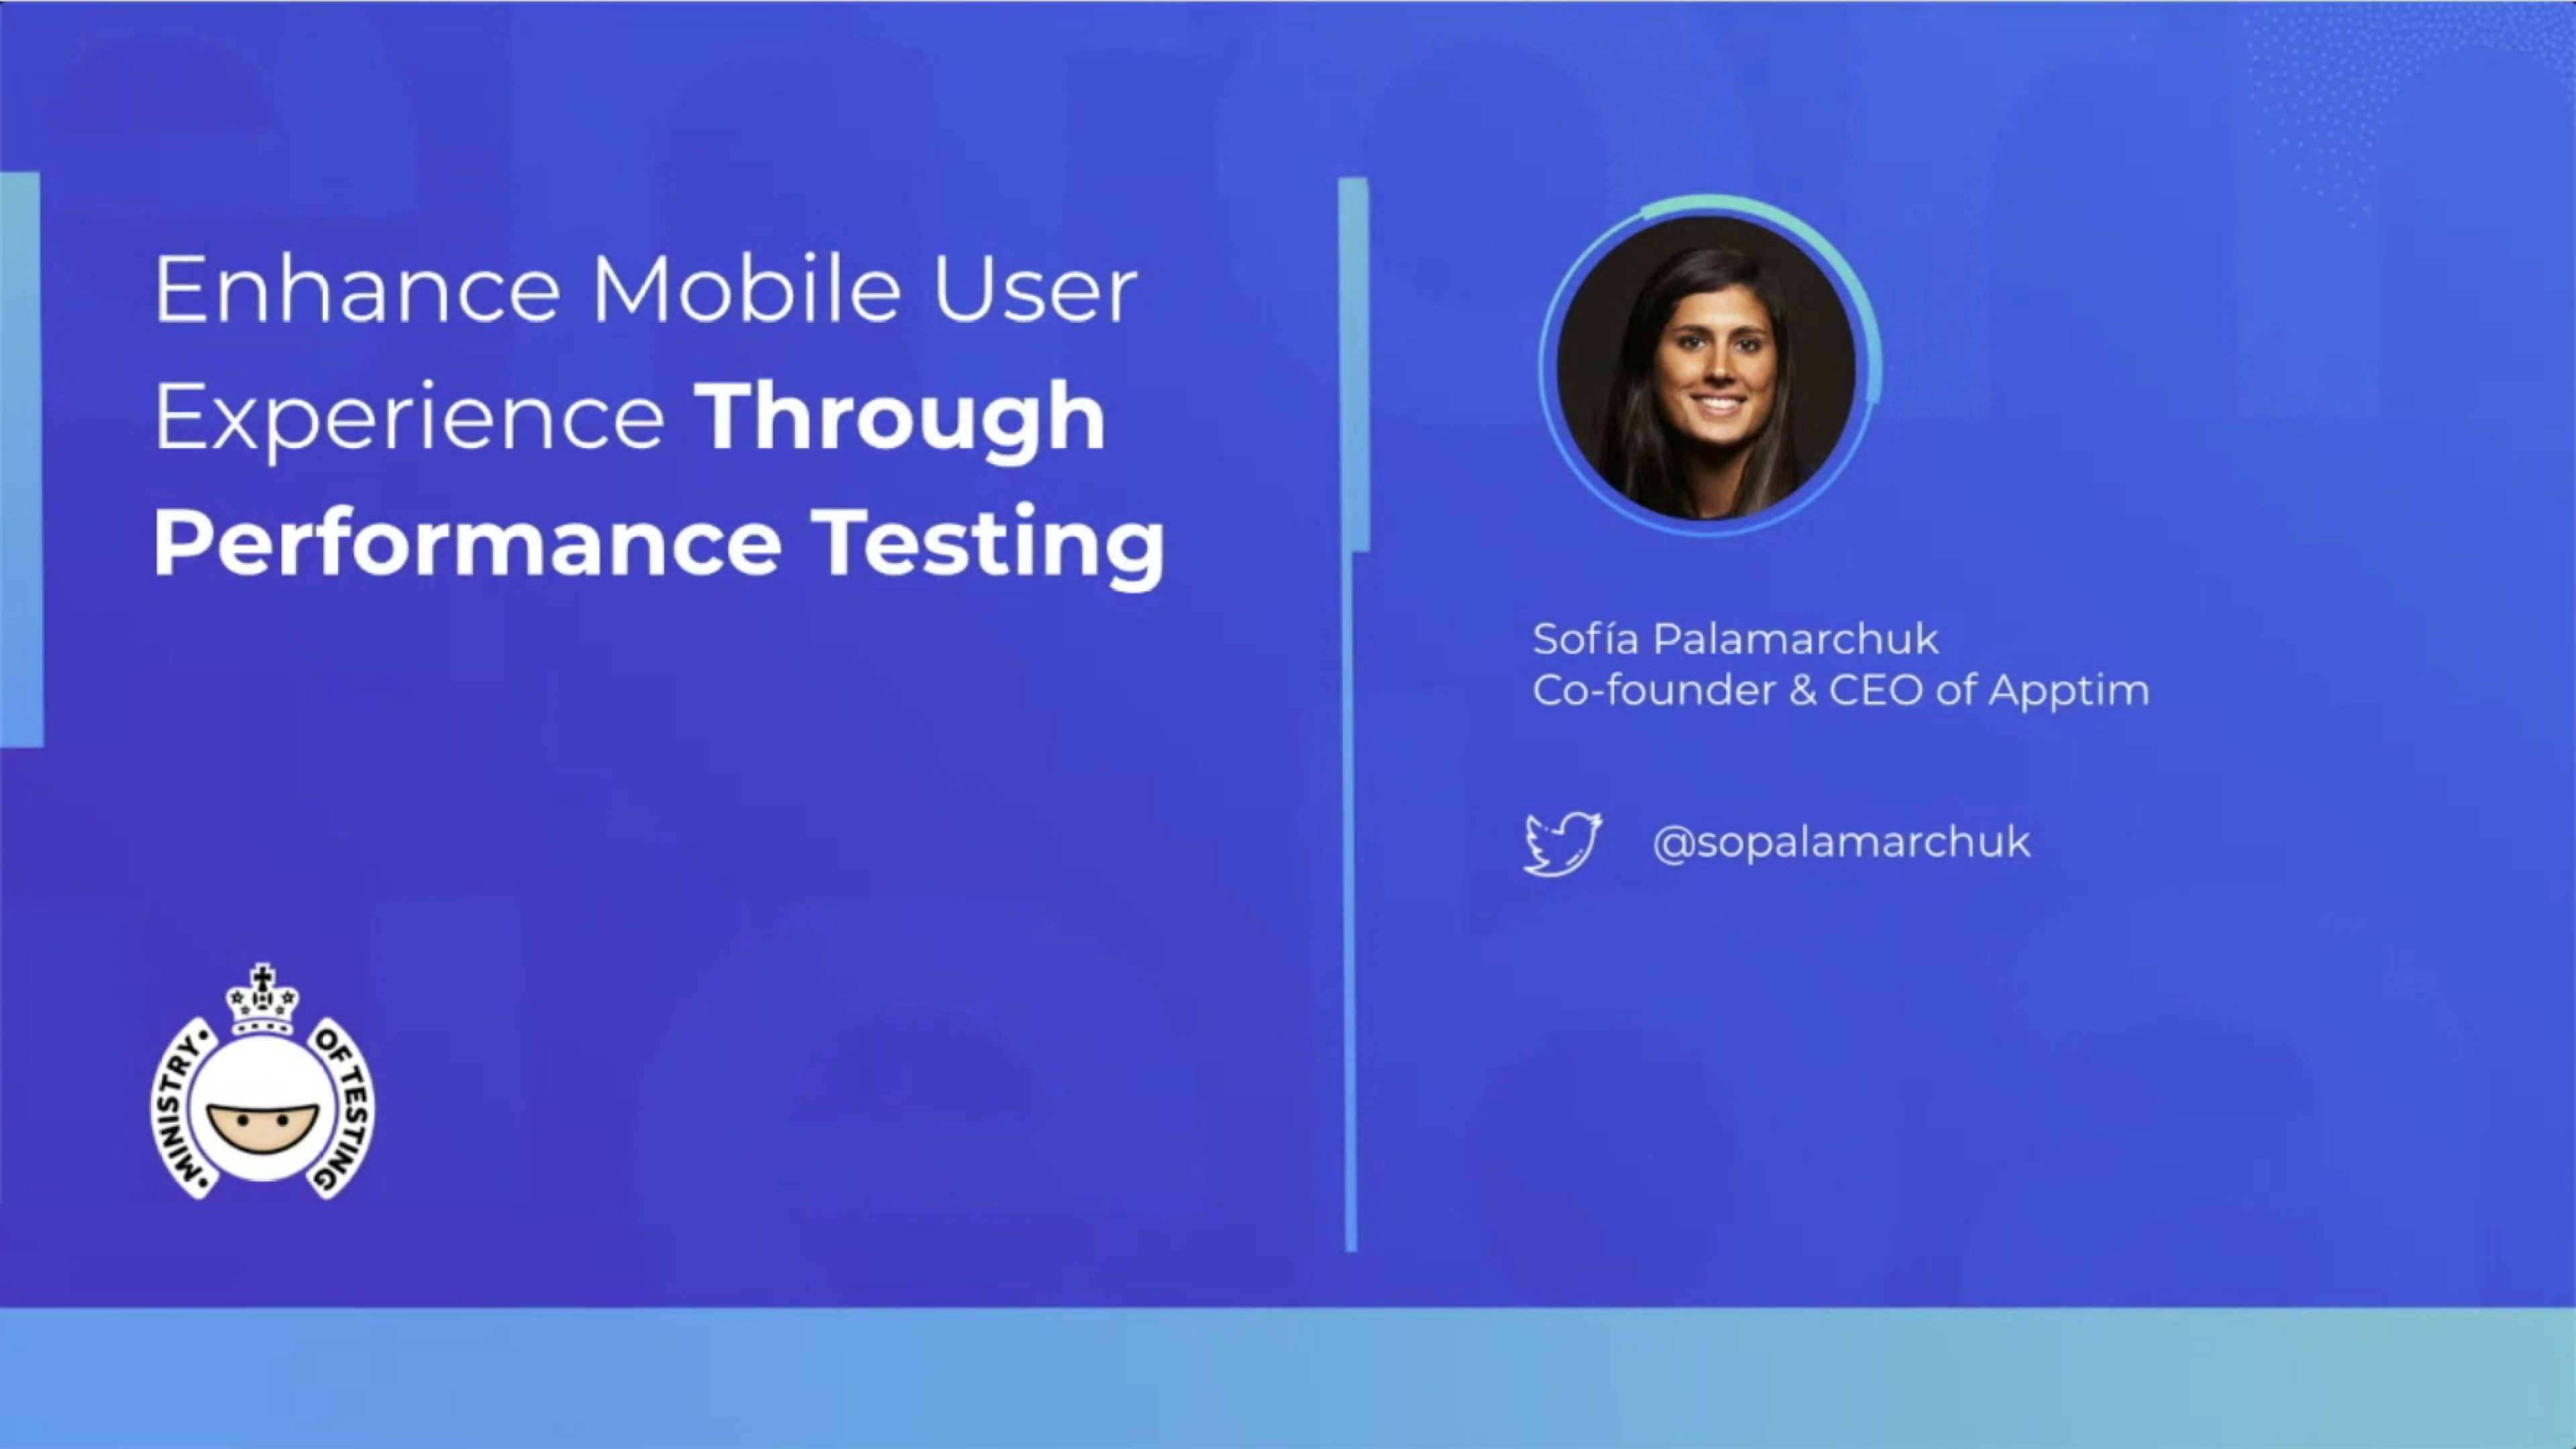 Enhance Mobile User Experience Through Performance Testing with Sofia Palamarchuk